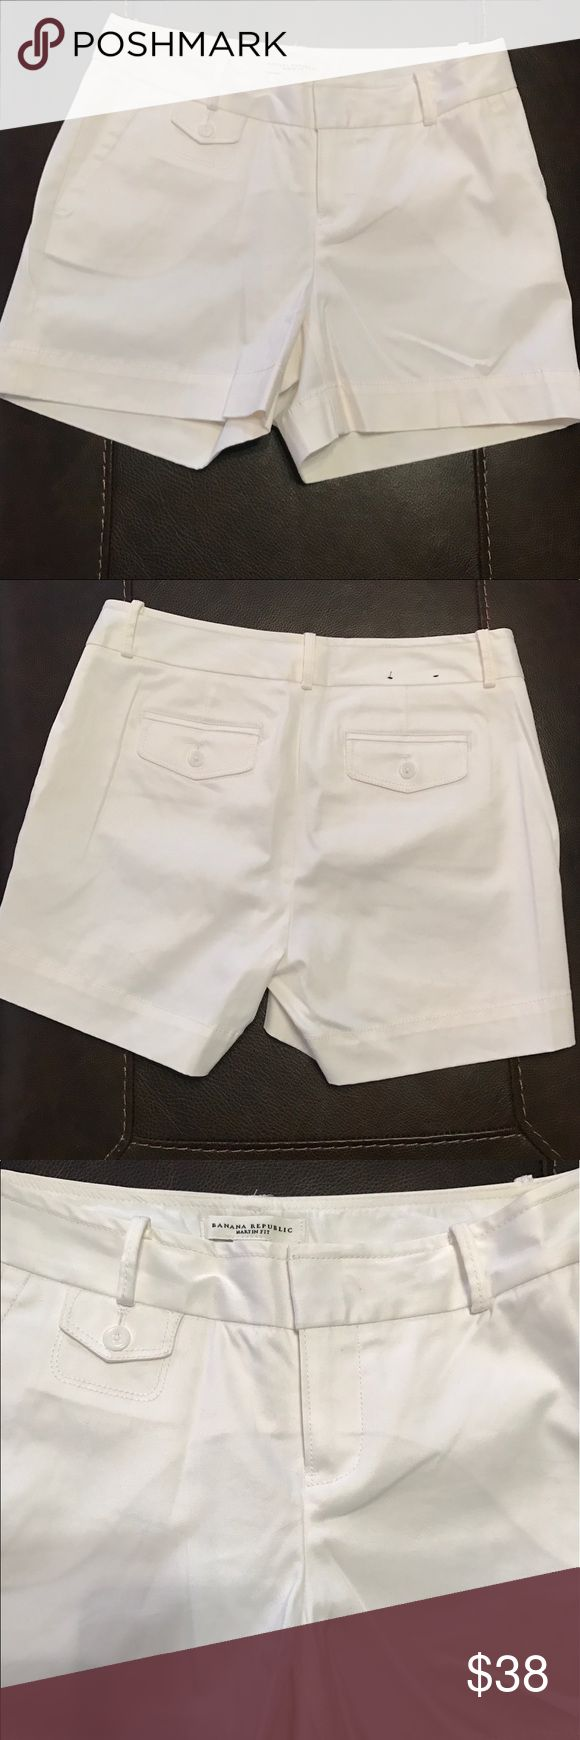 Banana Republic Martin Fit Shorts - 4 Inch Inseam Banana Republic Martin Fit Shorts - 4 Inch Inseam - Worn Once 98% Cotton 2% Spandex Banana Republic Shorts